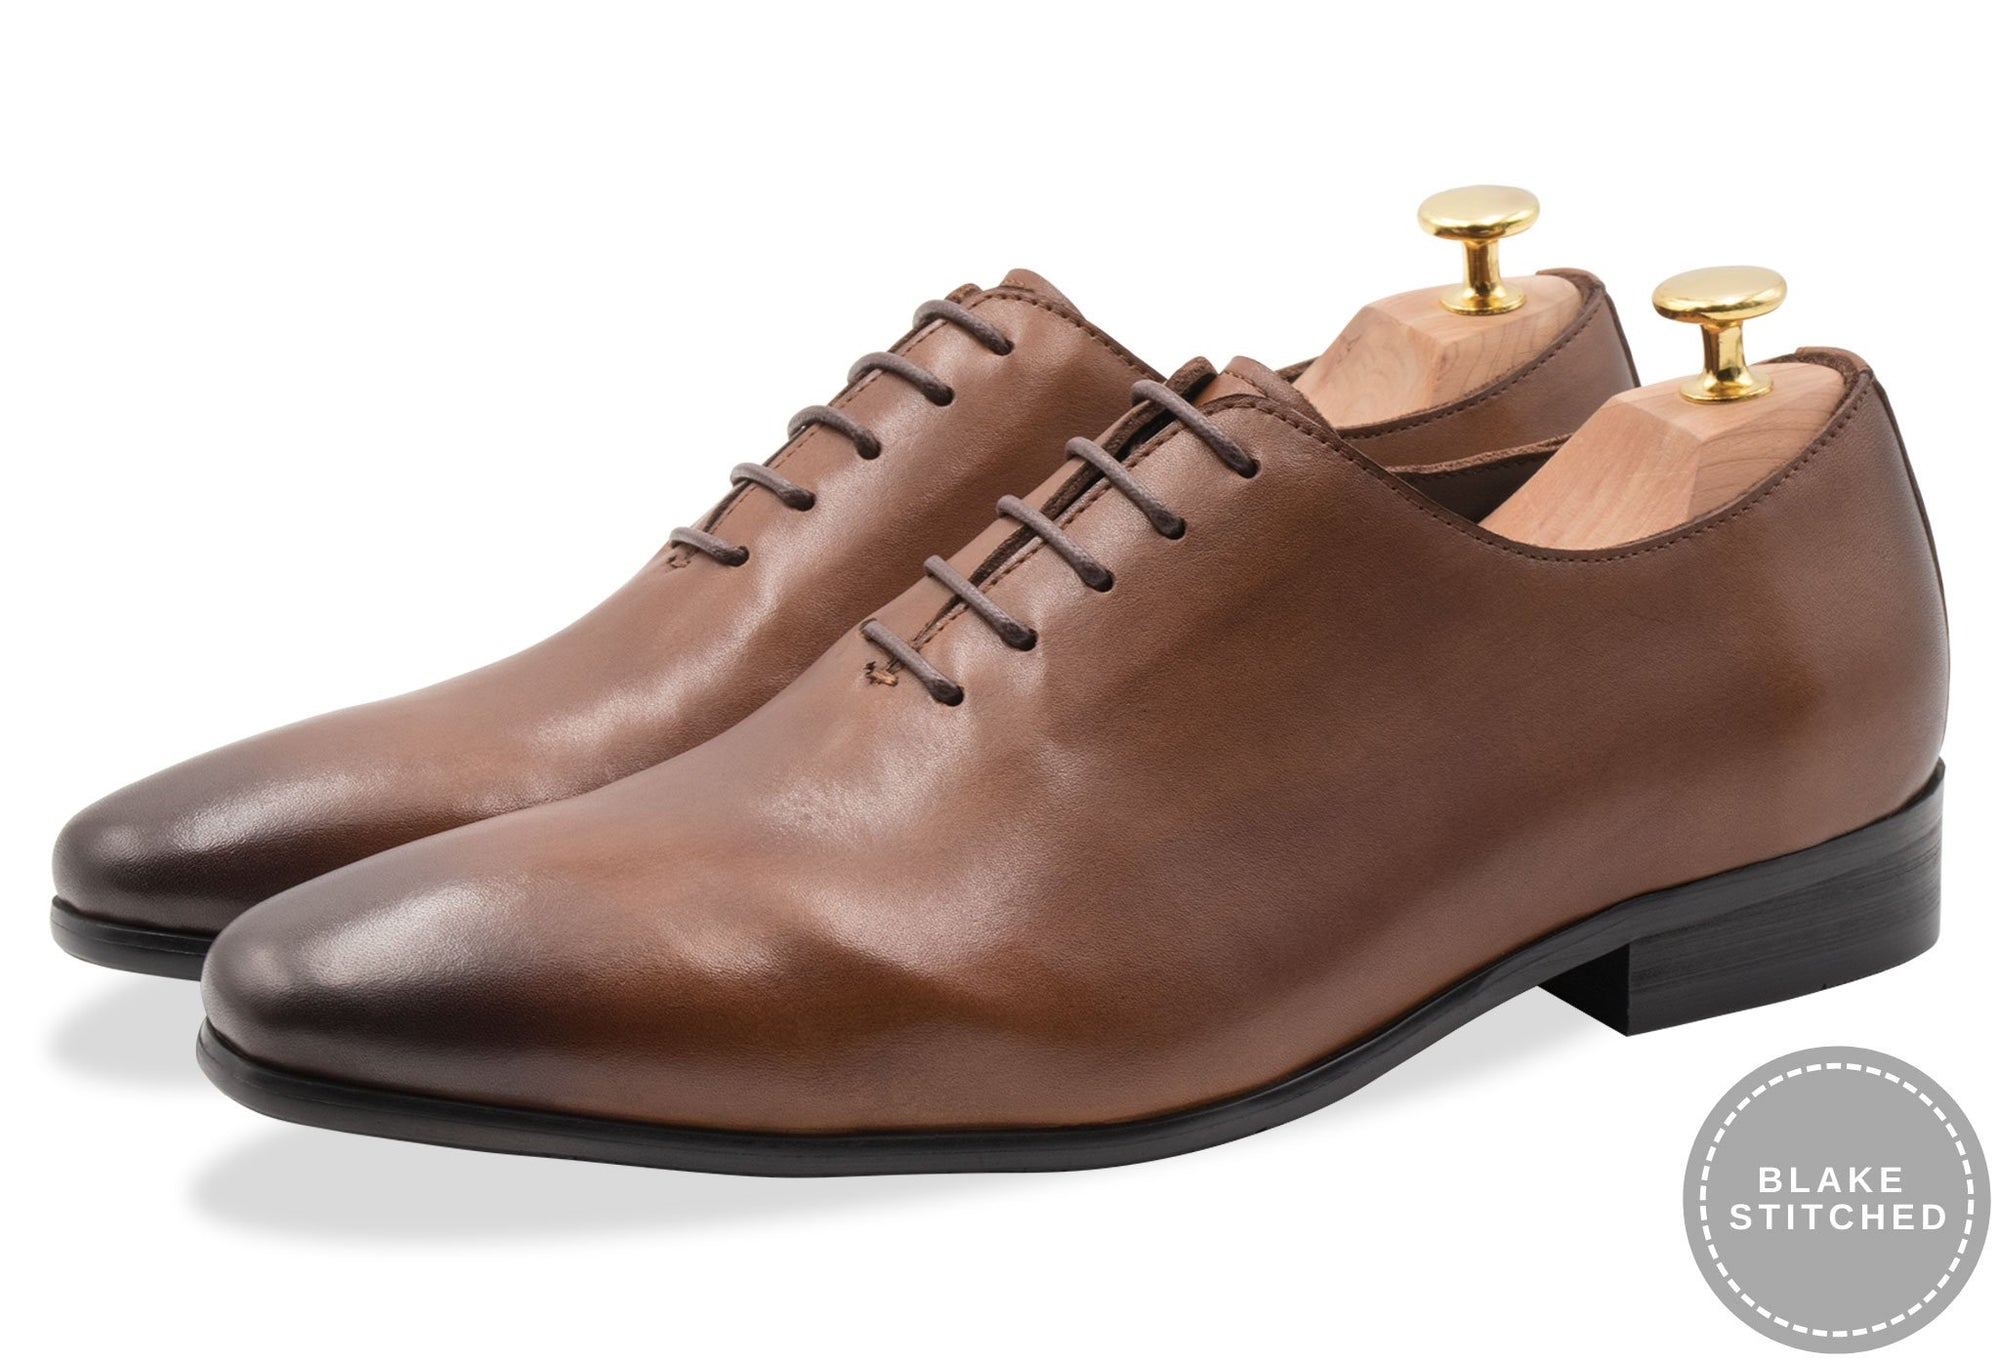 Carlota Blake Stitched Chestnut Oxford